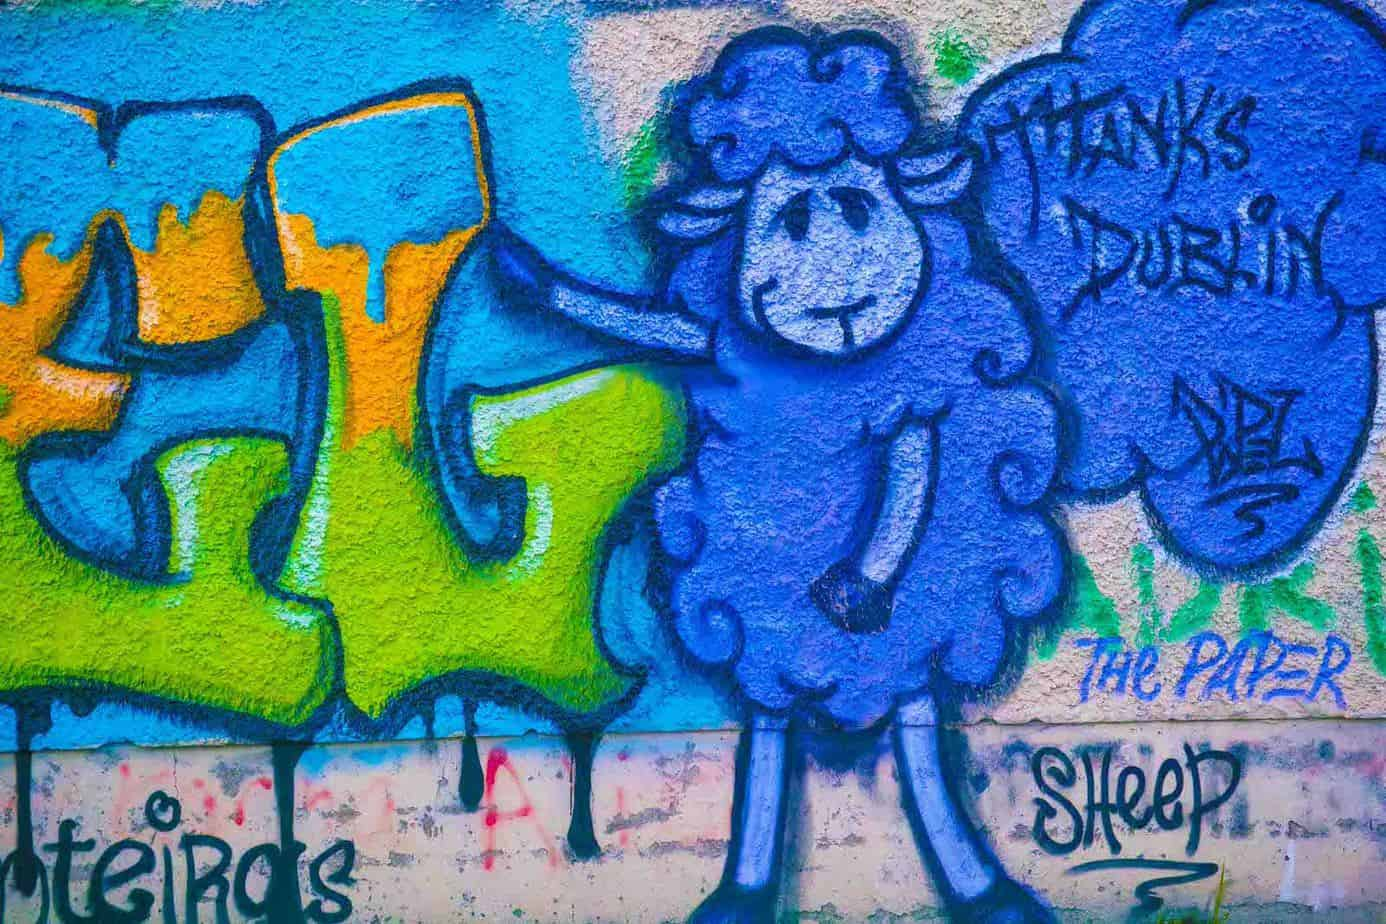 STREET-ART-PHOTOGRAPHED-ON-THE-LAST-DAY-OF-2014-HANOVER-QUAY-HAS-GREATLY-CHANGED-SINCE-THEN-159176-1